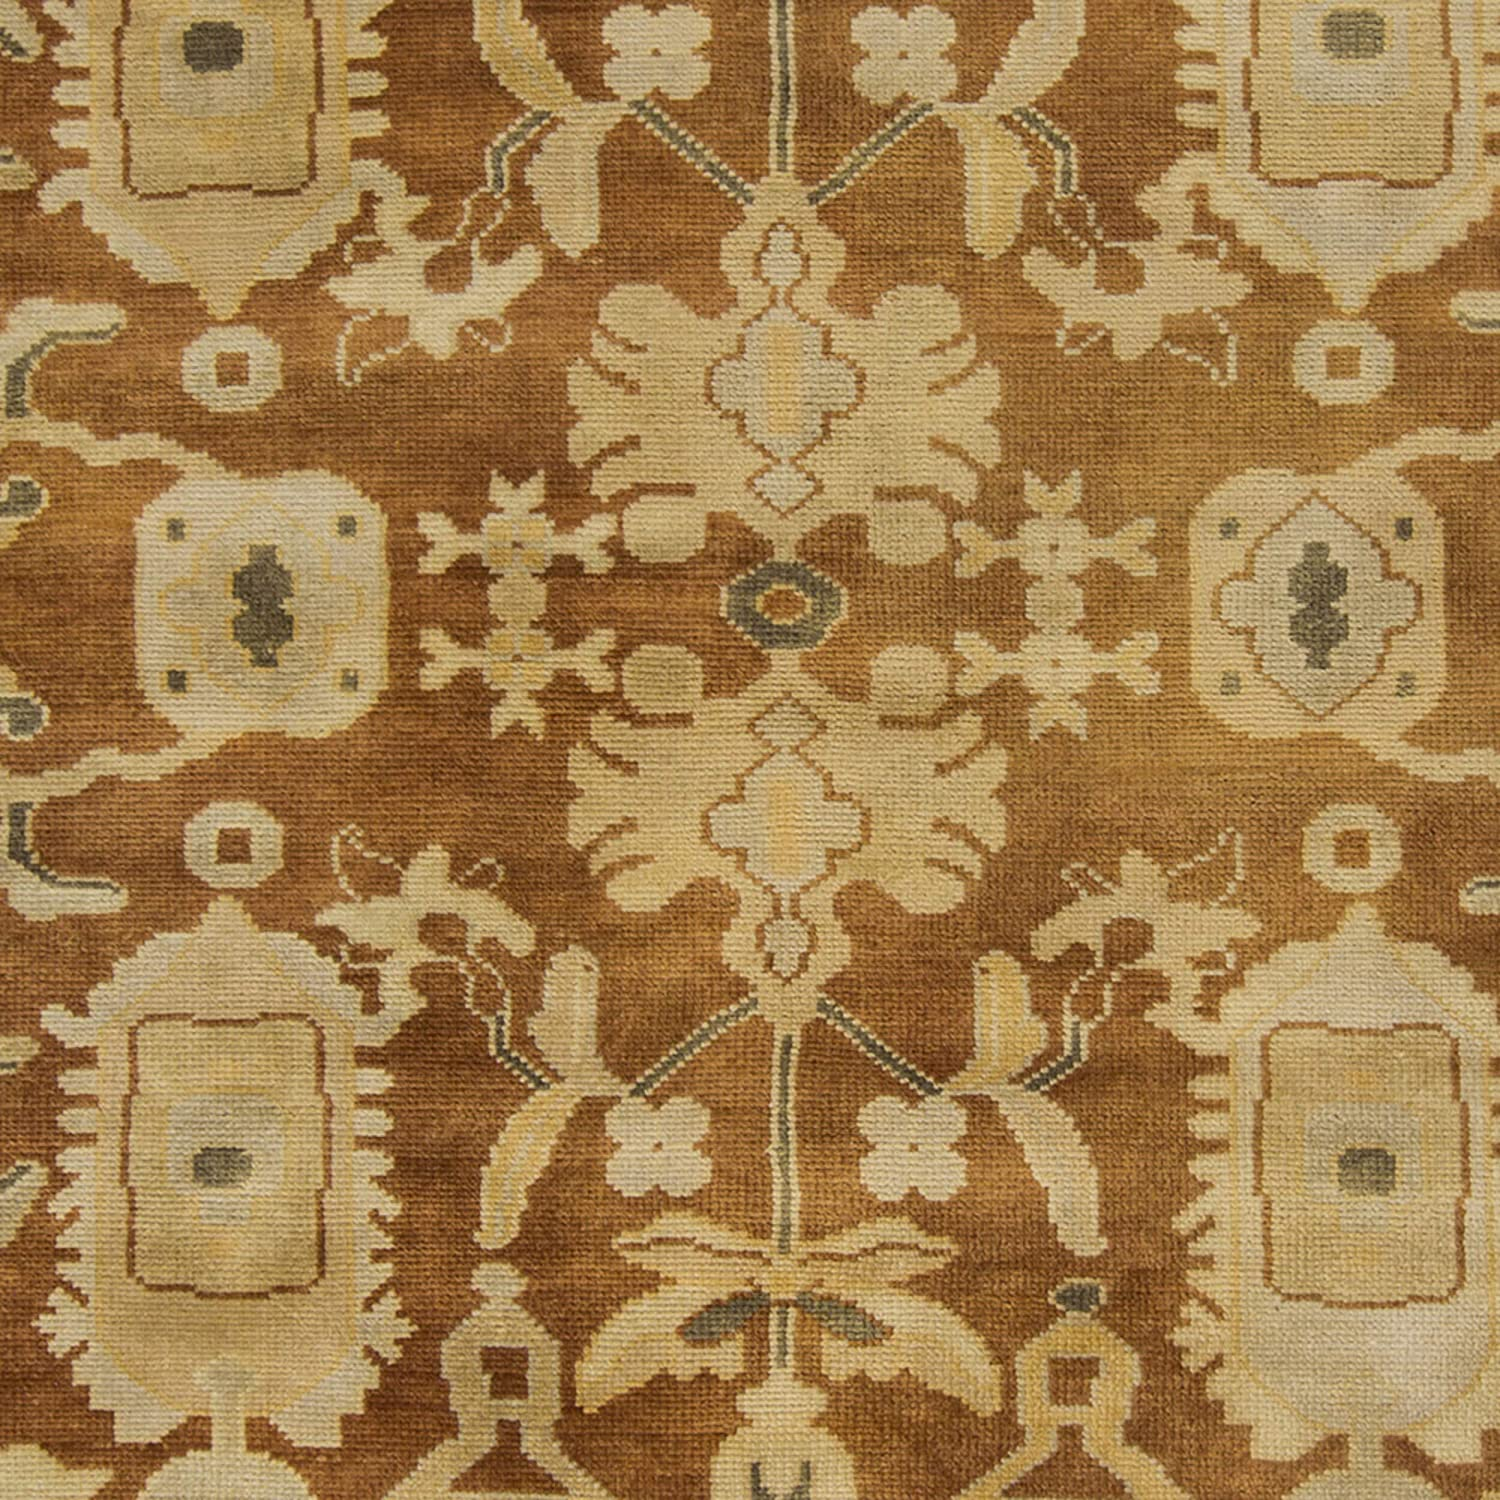 MISC Hand Knotted Floral New Zealand Wool Area Rug 2' X 3' Orange Paisley Natural Fiber Latex Free Handmade